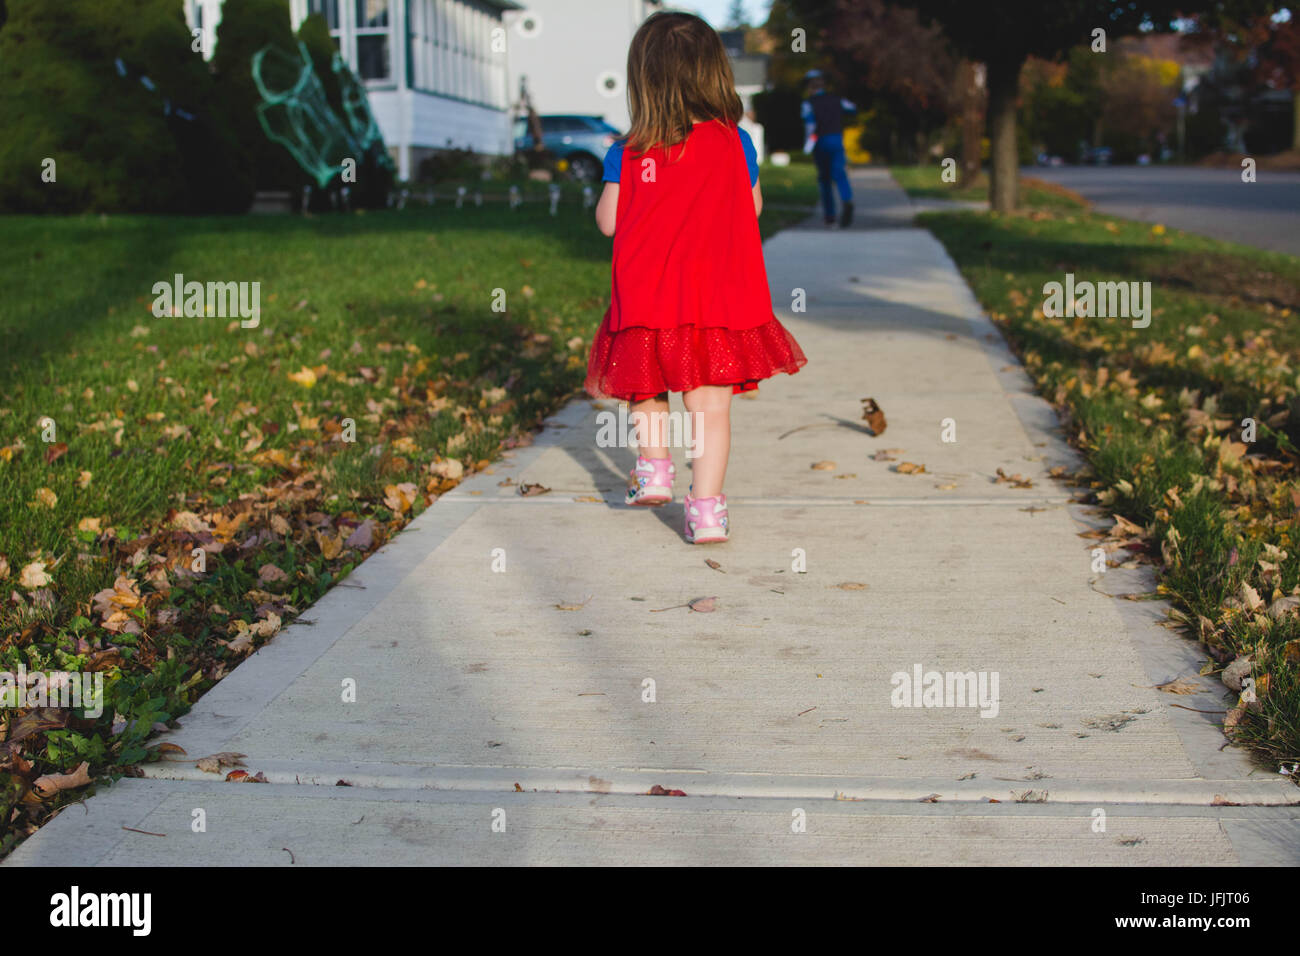 A young girl walks down a sidewalk from behind at sunset in the Fall wearing a red cape. - Stock Image